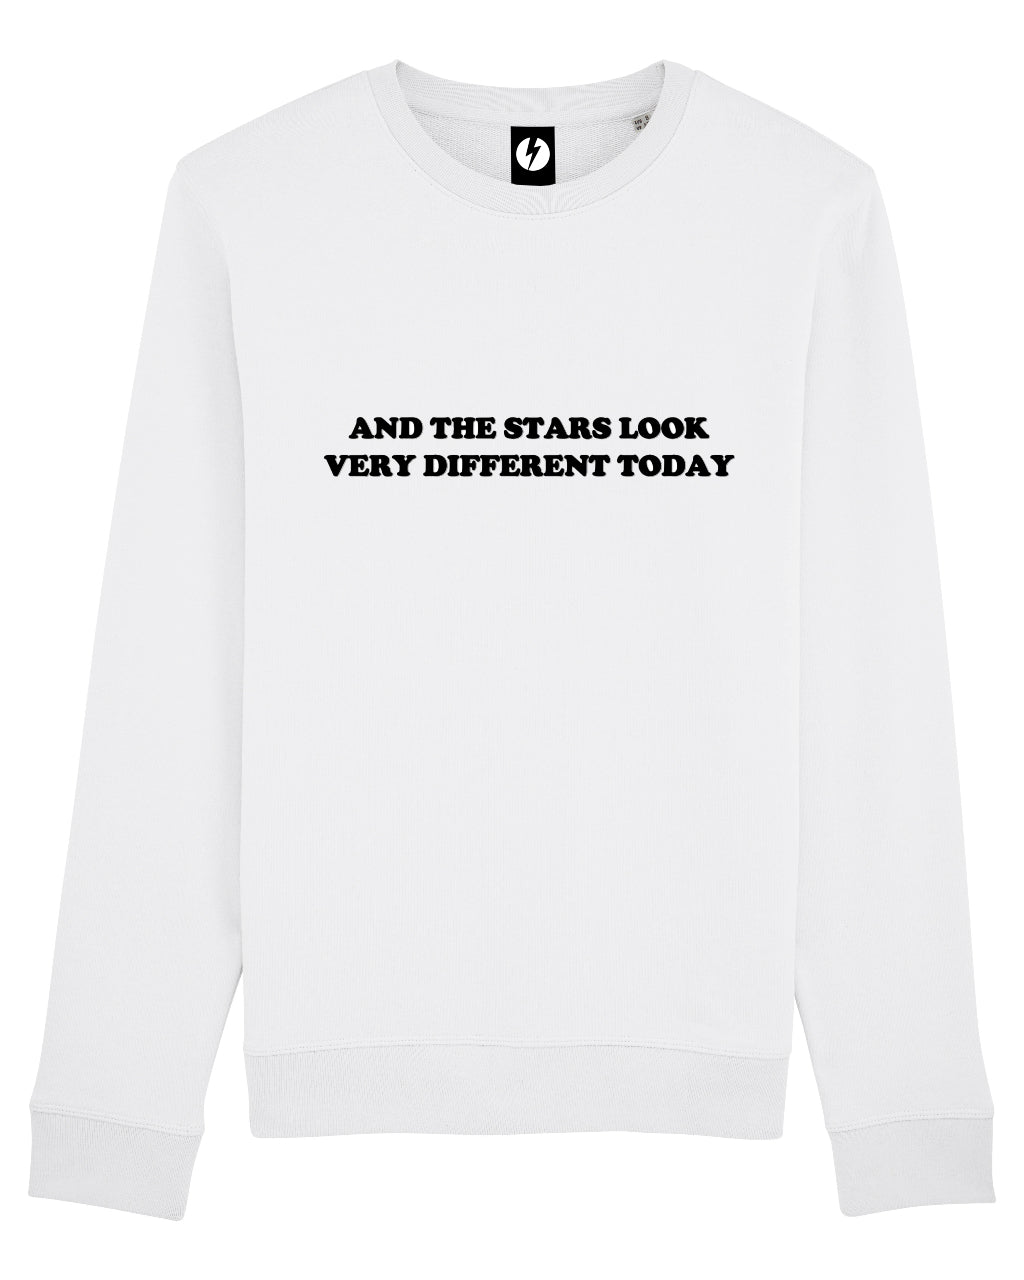 'AND THE STARS LOOK VERY DIFFERENT TODAY' EMBROIDERED ORGANIC COTTON UNISEX SWEATSHIRT